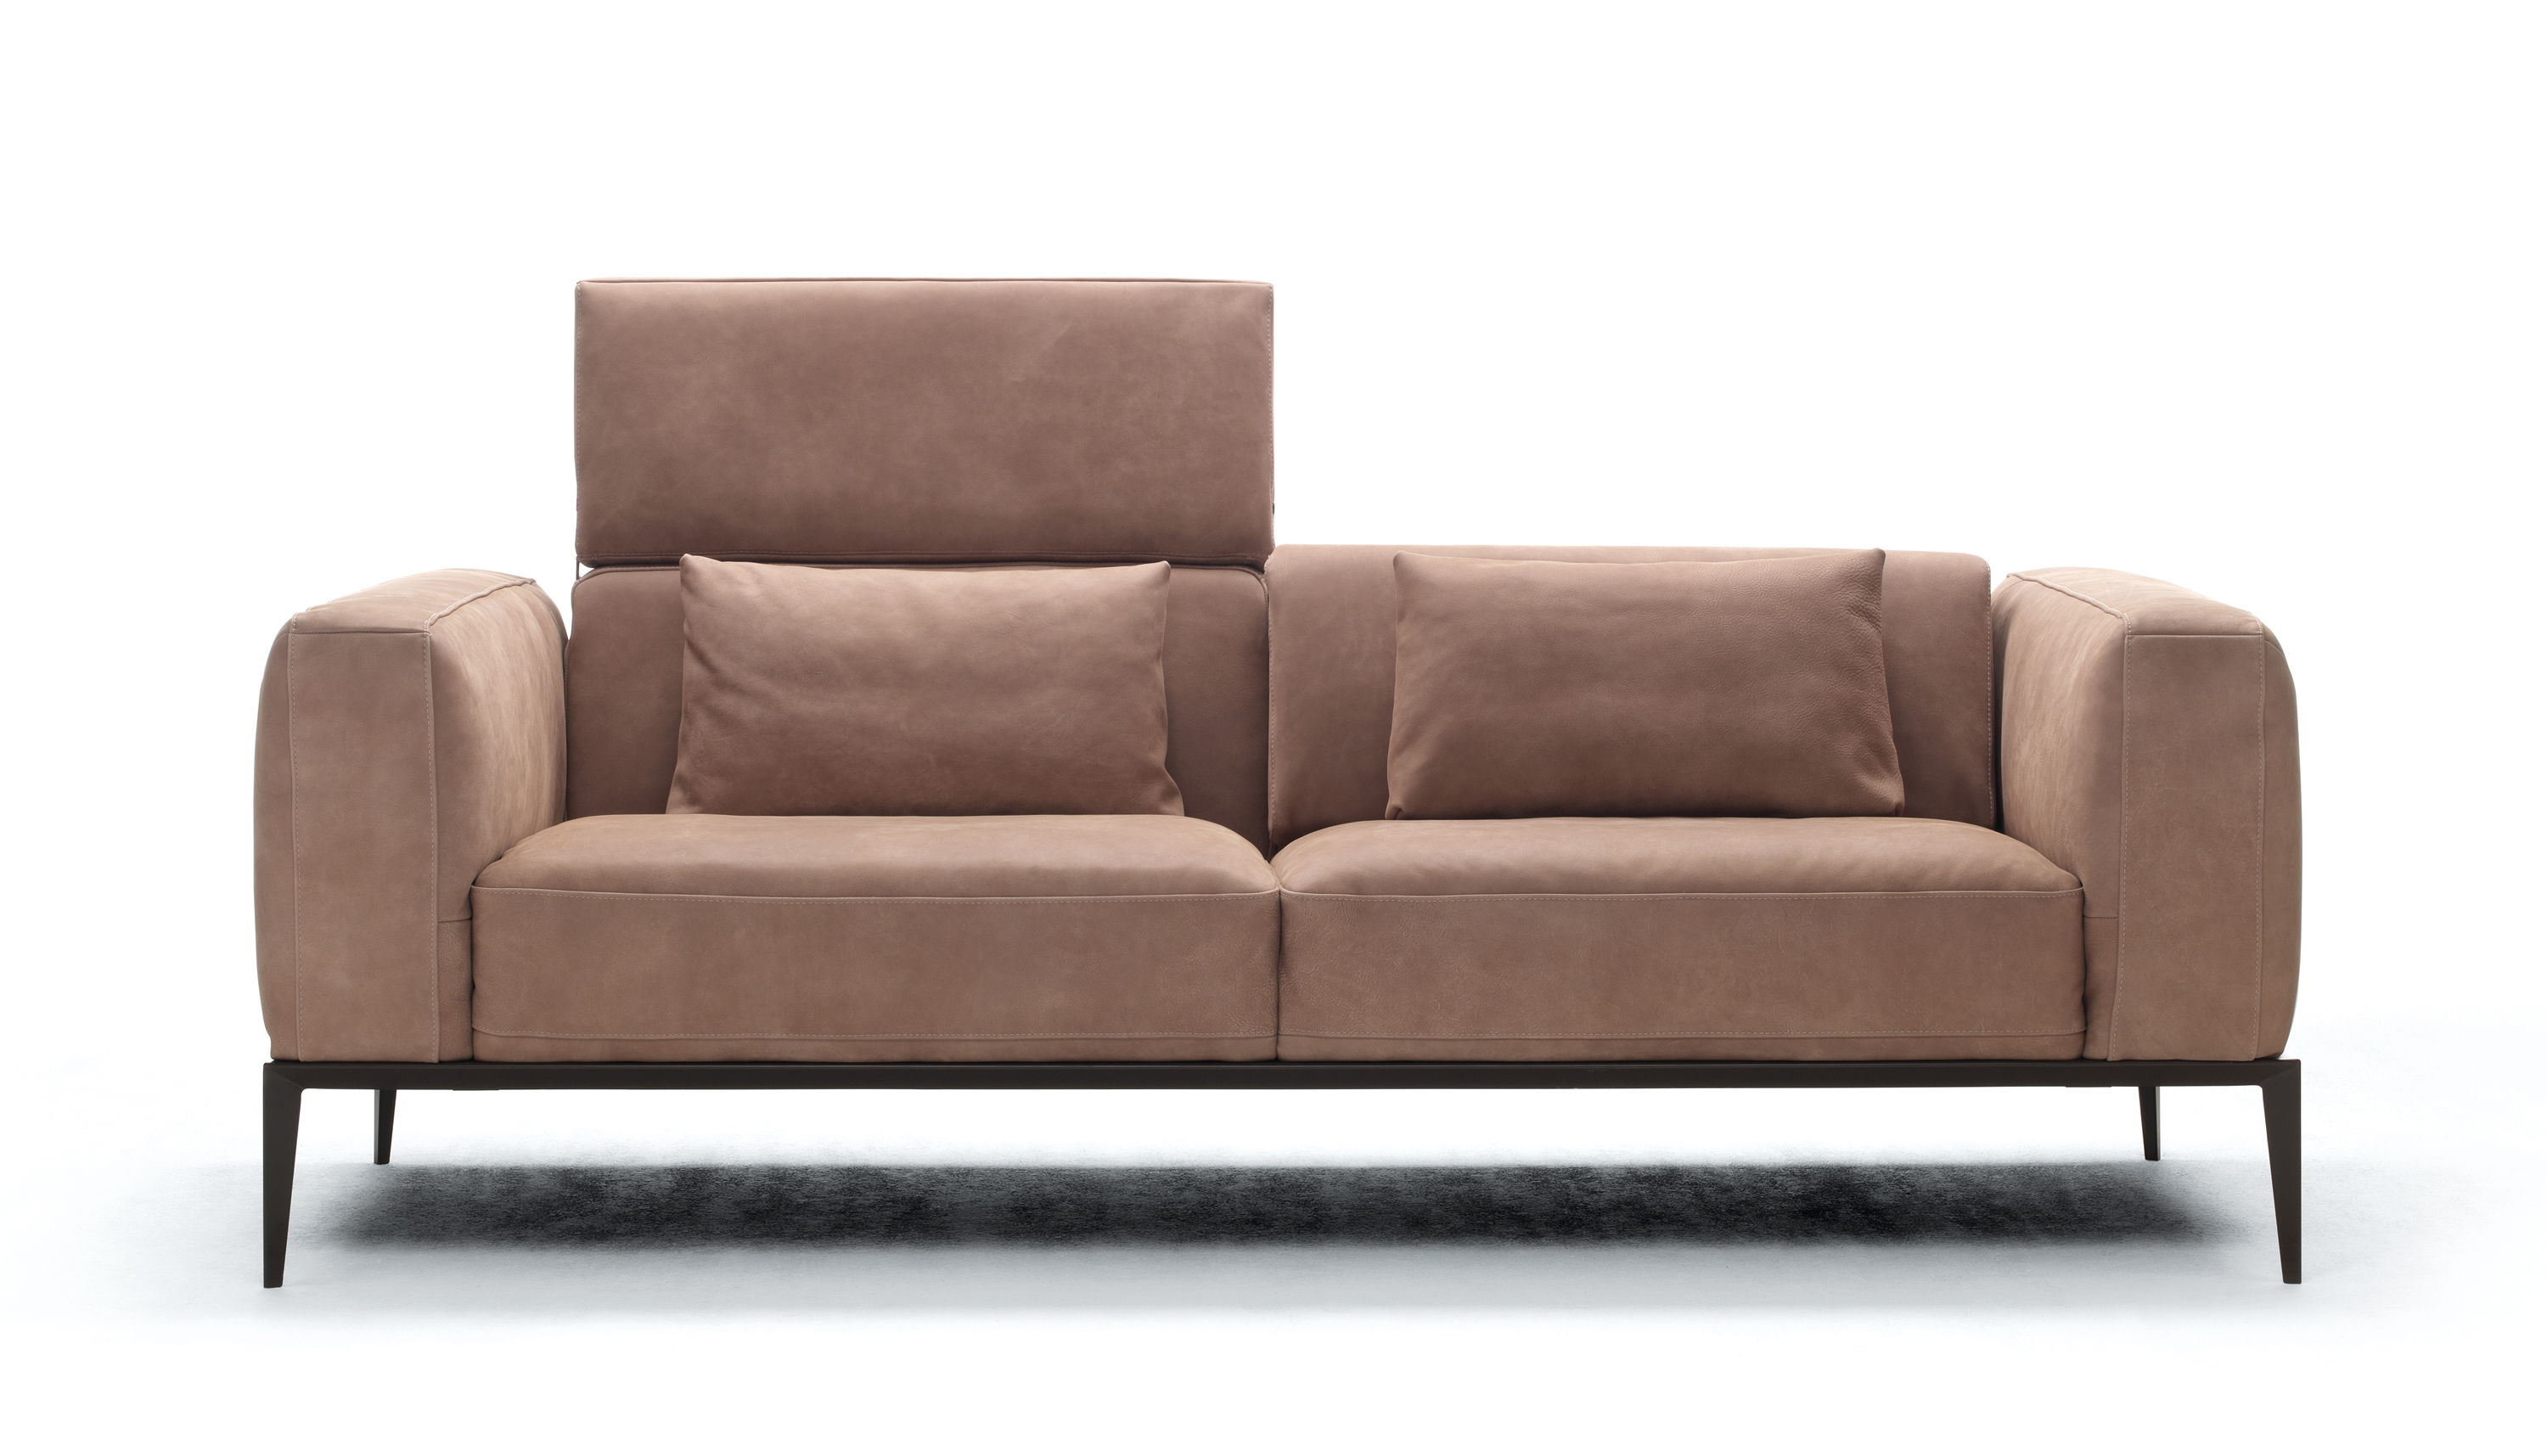 Variant Of Luxurious Chinese Sofa Designs